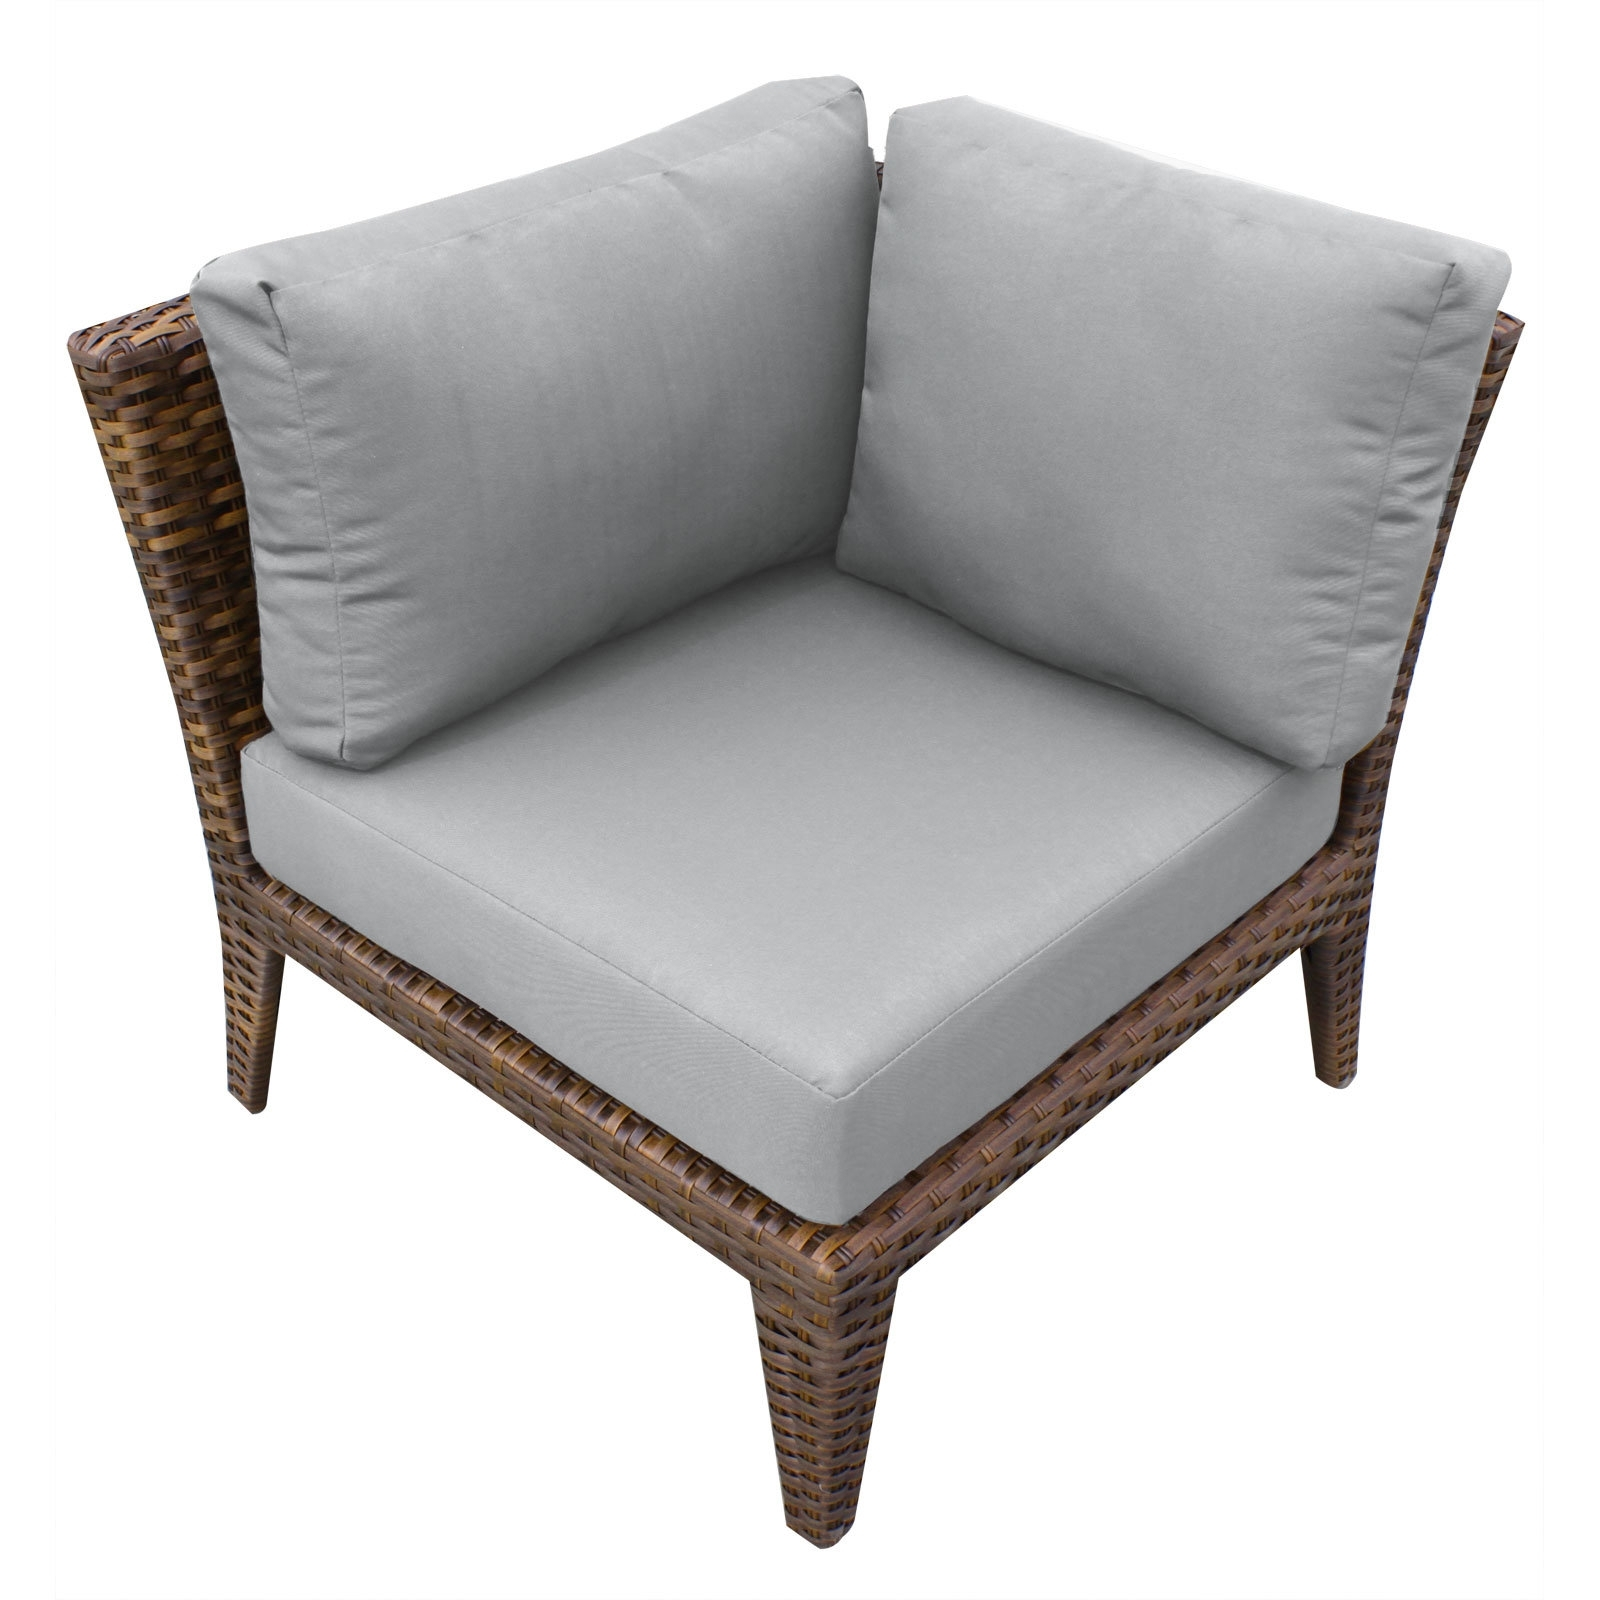 Tk Classics Manhattan Deep Seating Chair With Cushions | Wayfair With Regard To Manhattan Patio Grey Rocking Chairs (#15 of 15)